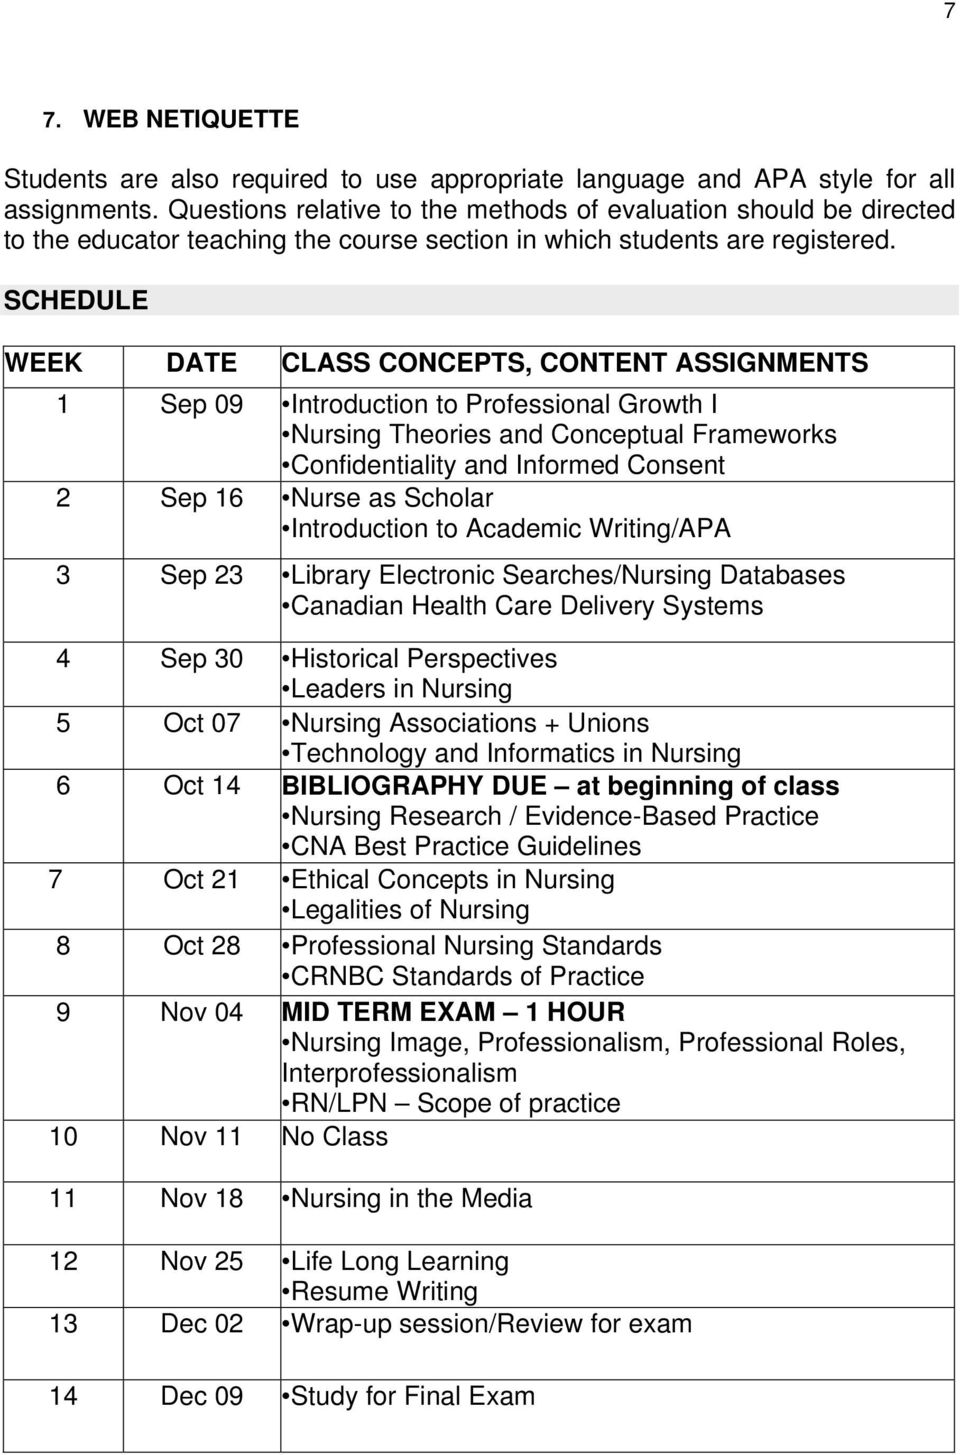 SCHEDULE WEEK DATE CLASS CONCEPTS, CONTENT ASSIGNMENTS 1 Sep 09 Introduction to Professional Growth I Nursing Theories and Conceptual Frameworks Confidentiality and Informed Consent 2 Sep 16 Nurse as